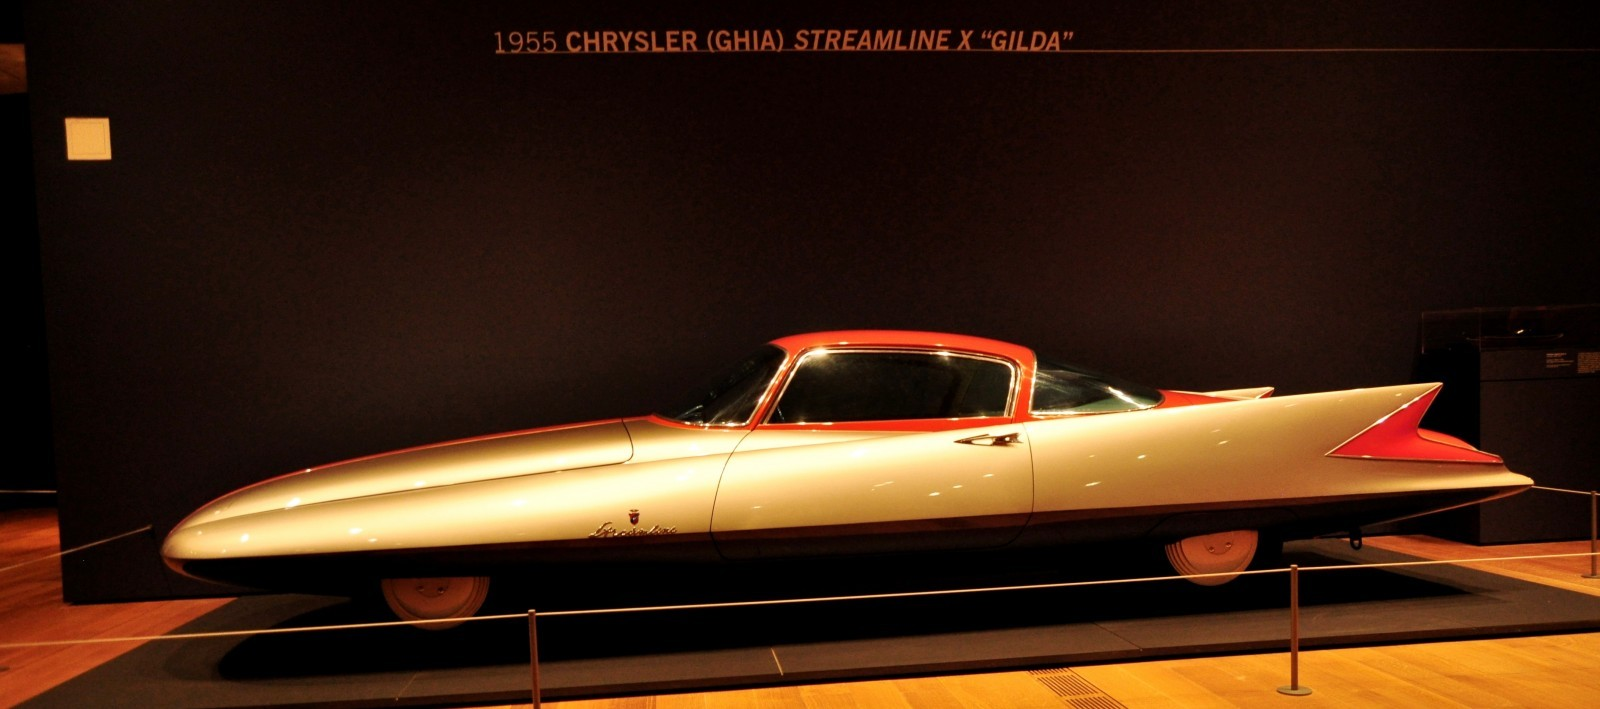 Atlanta Dream Cars - 1955 Chrysler Streamline X Ghilda by GHIA is Turbine Car Ideal 10